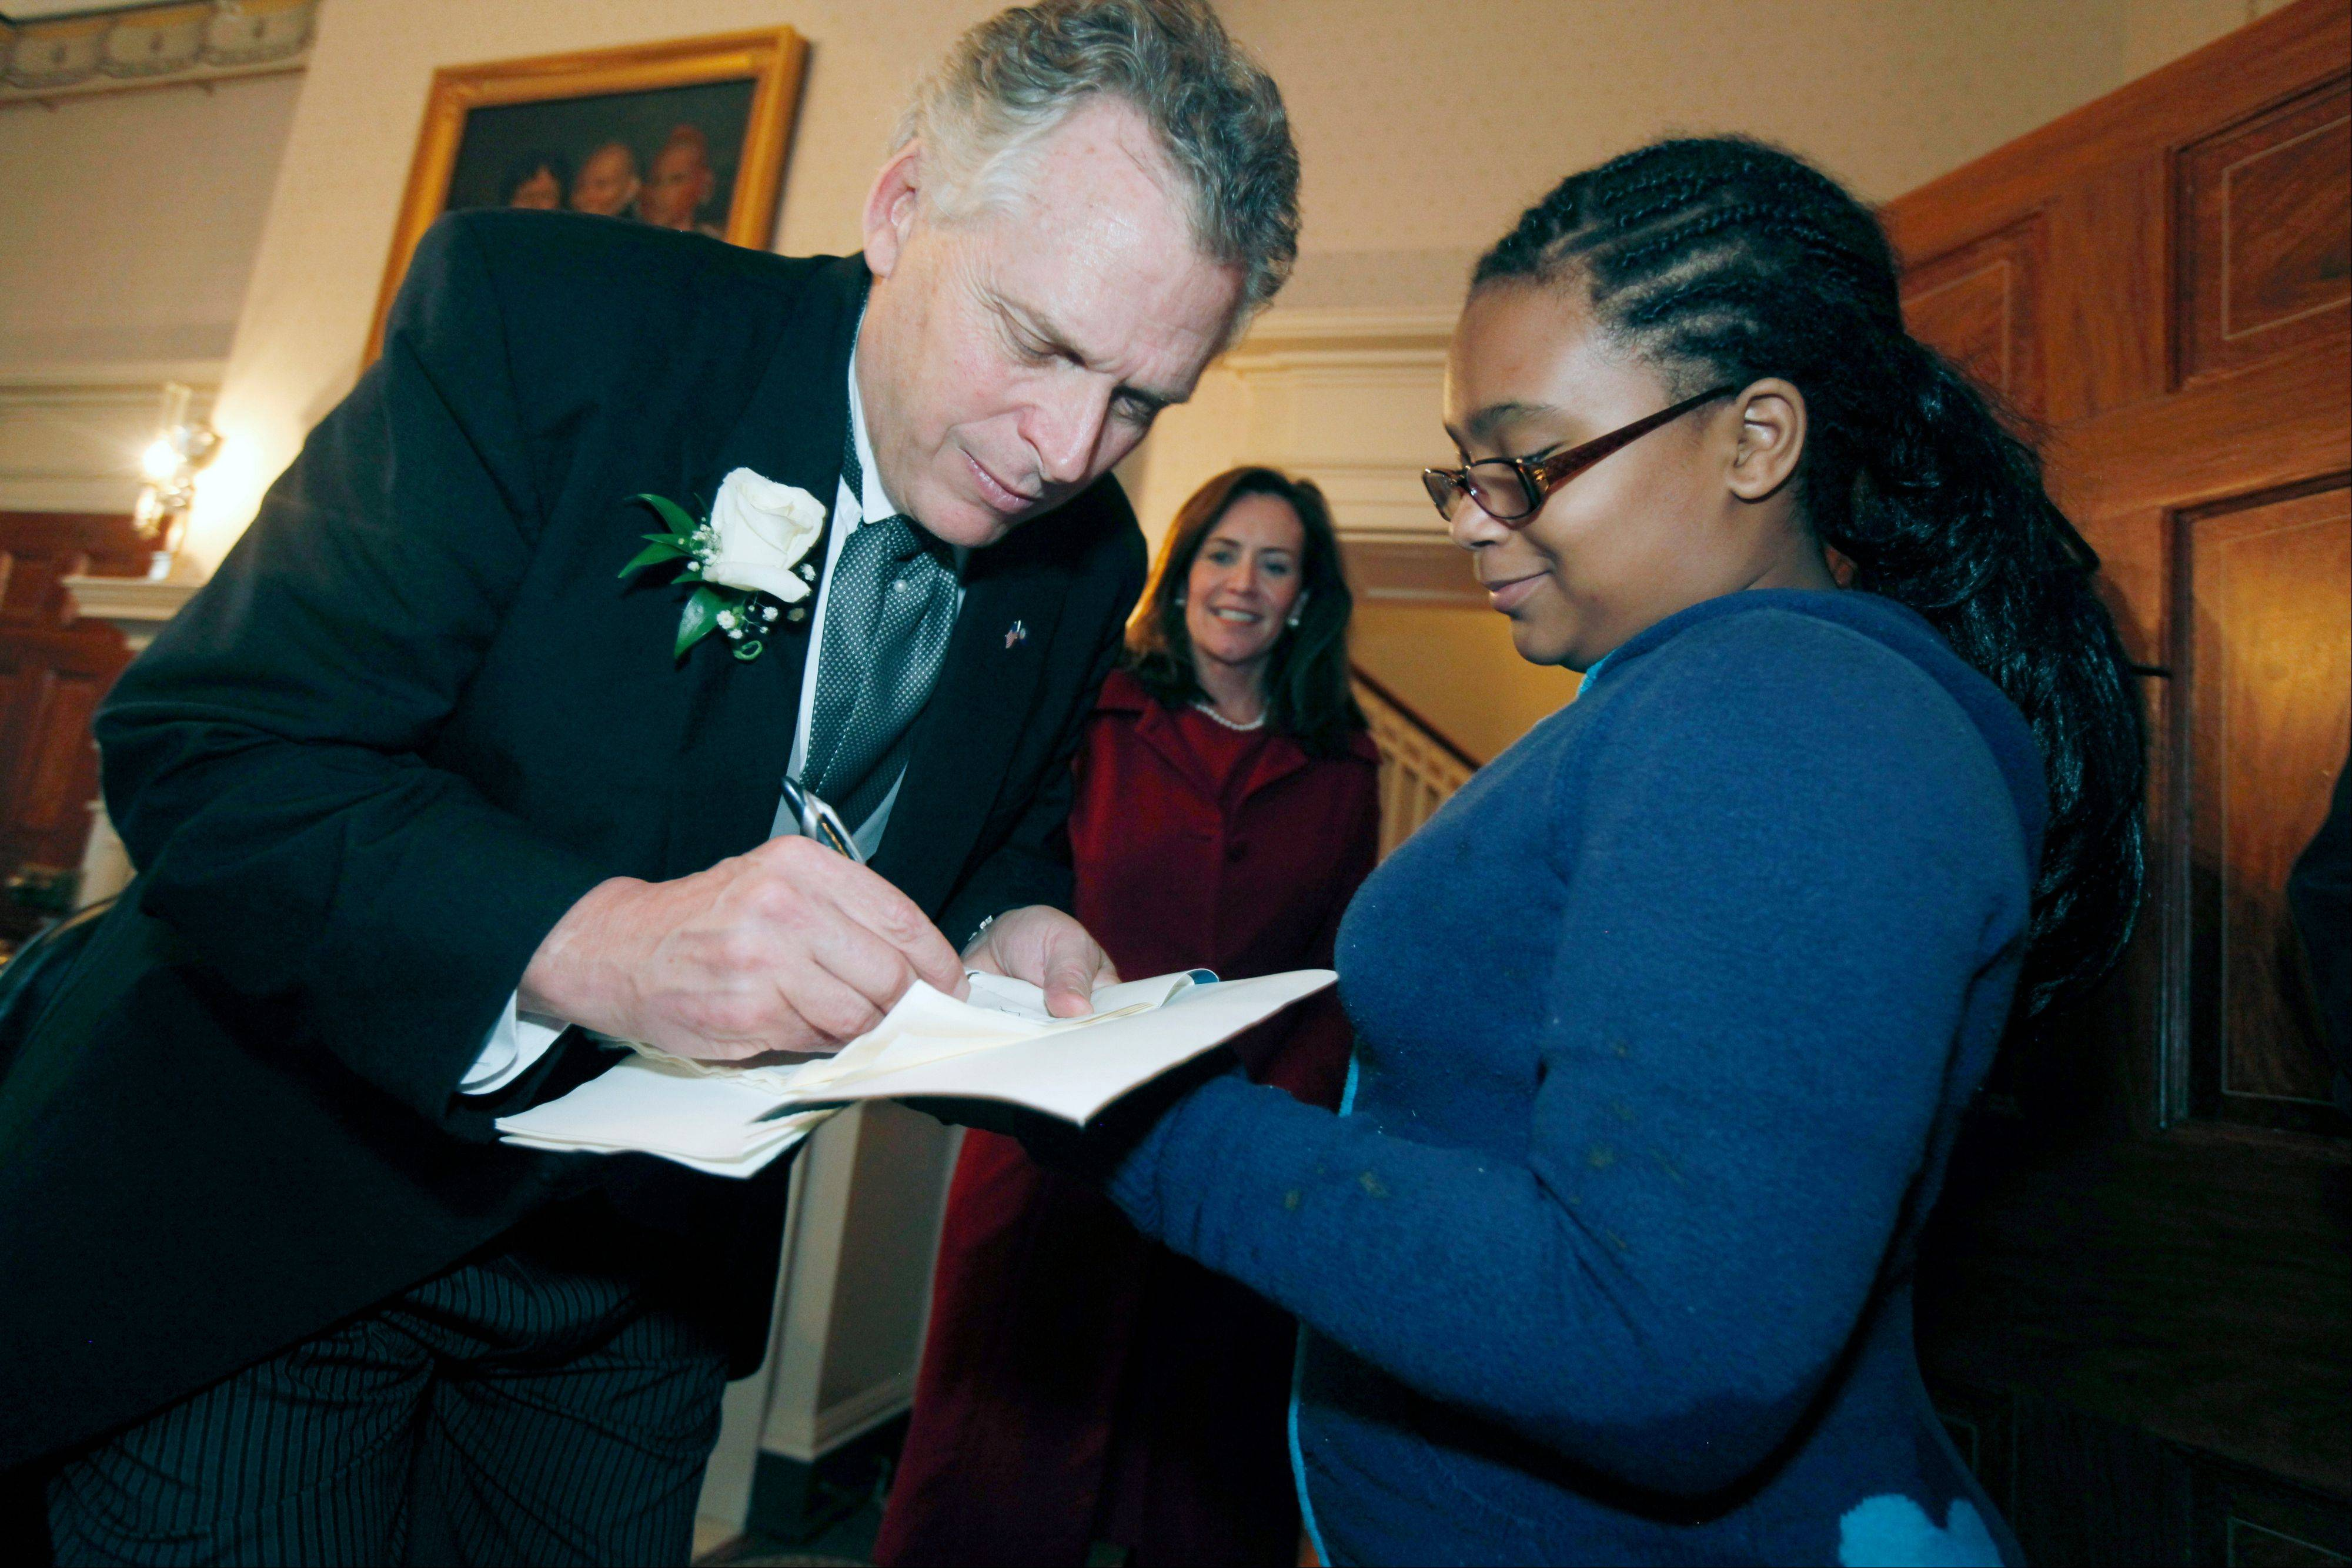 Governor Terry McAuliffe signs an autograph Saturday for Daisa Bridges, 12, as McAuliffe's wife Dorothy, center, looks on during an open house at the Executive Mansion in Richmond, Va.